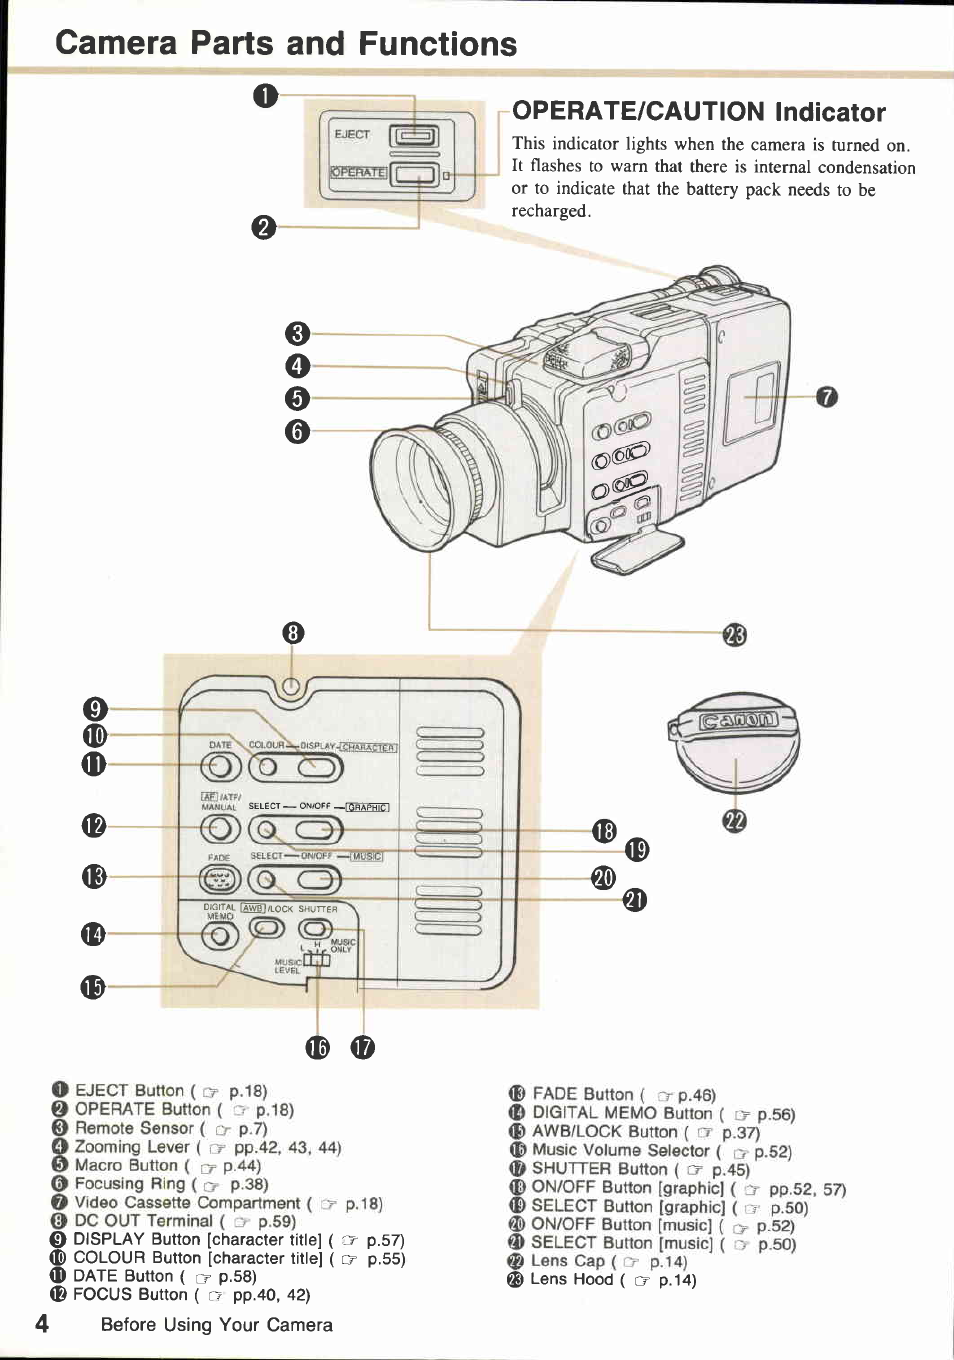 Camera parts and functions, Operate/caution indicator | Canon E850 User  Manual | Page